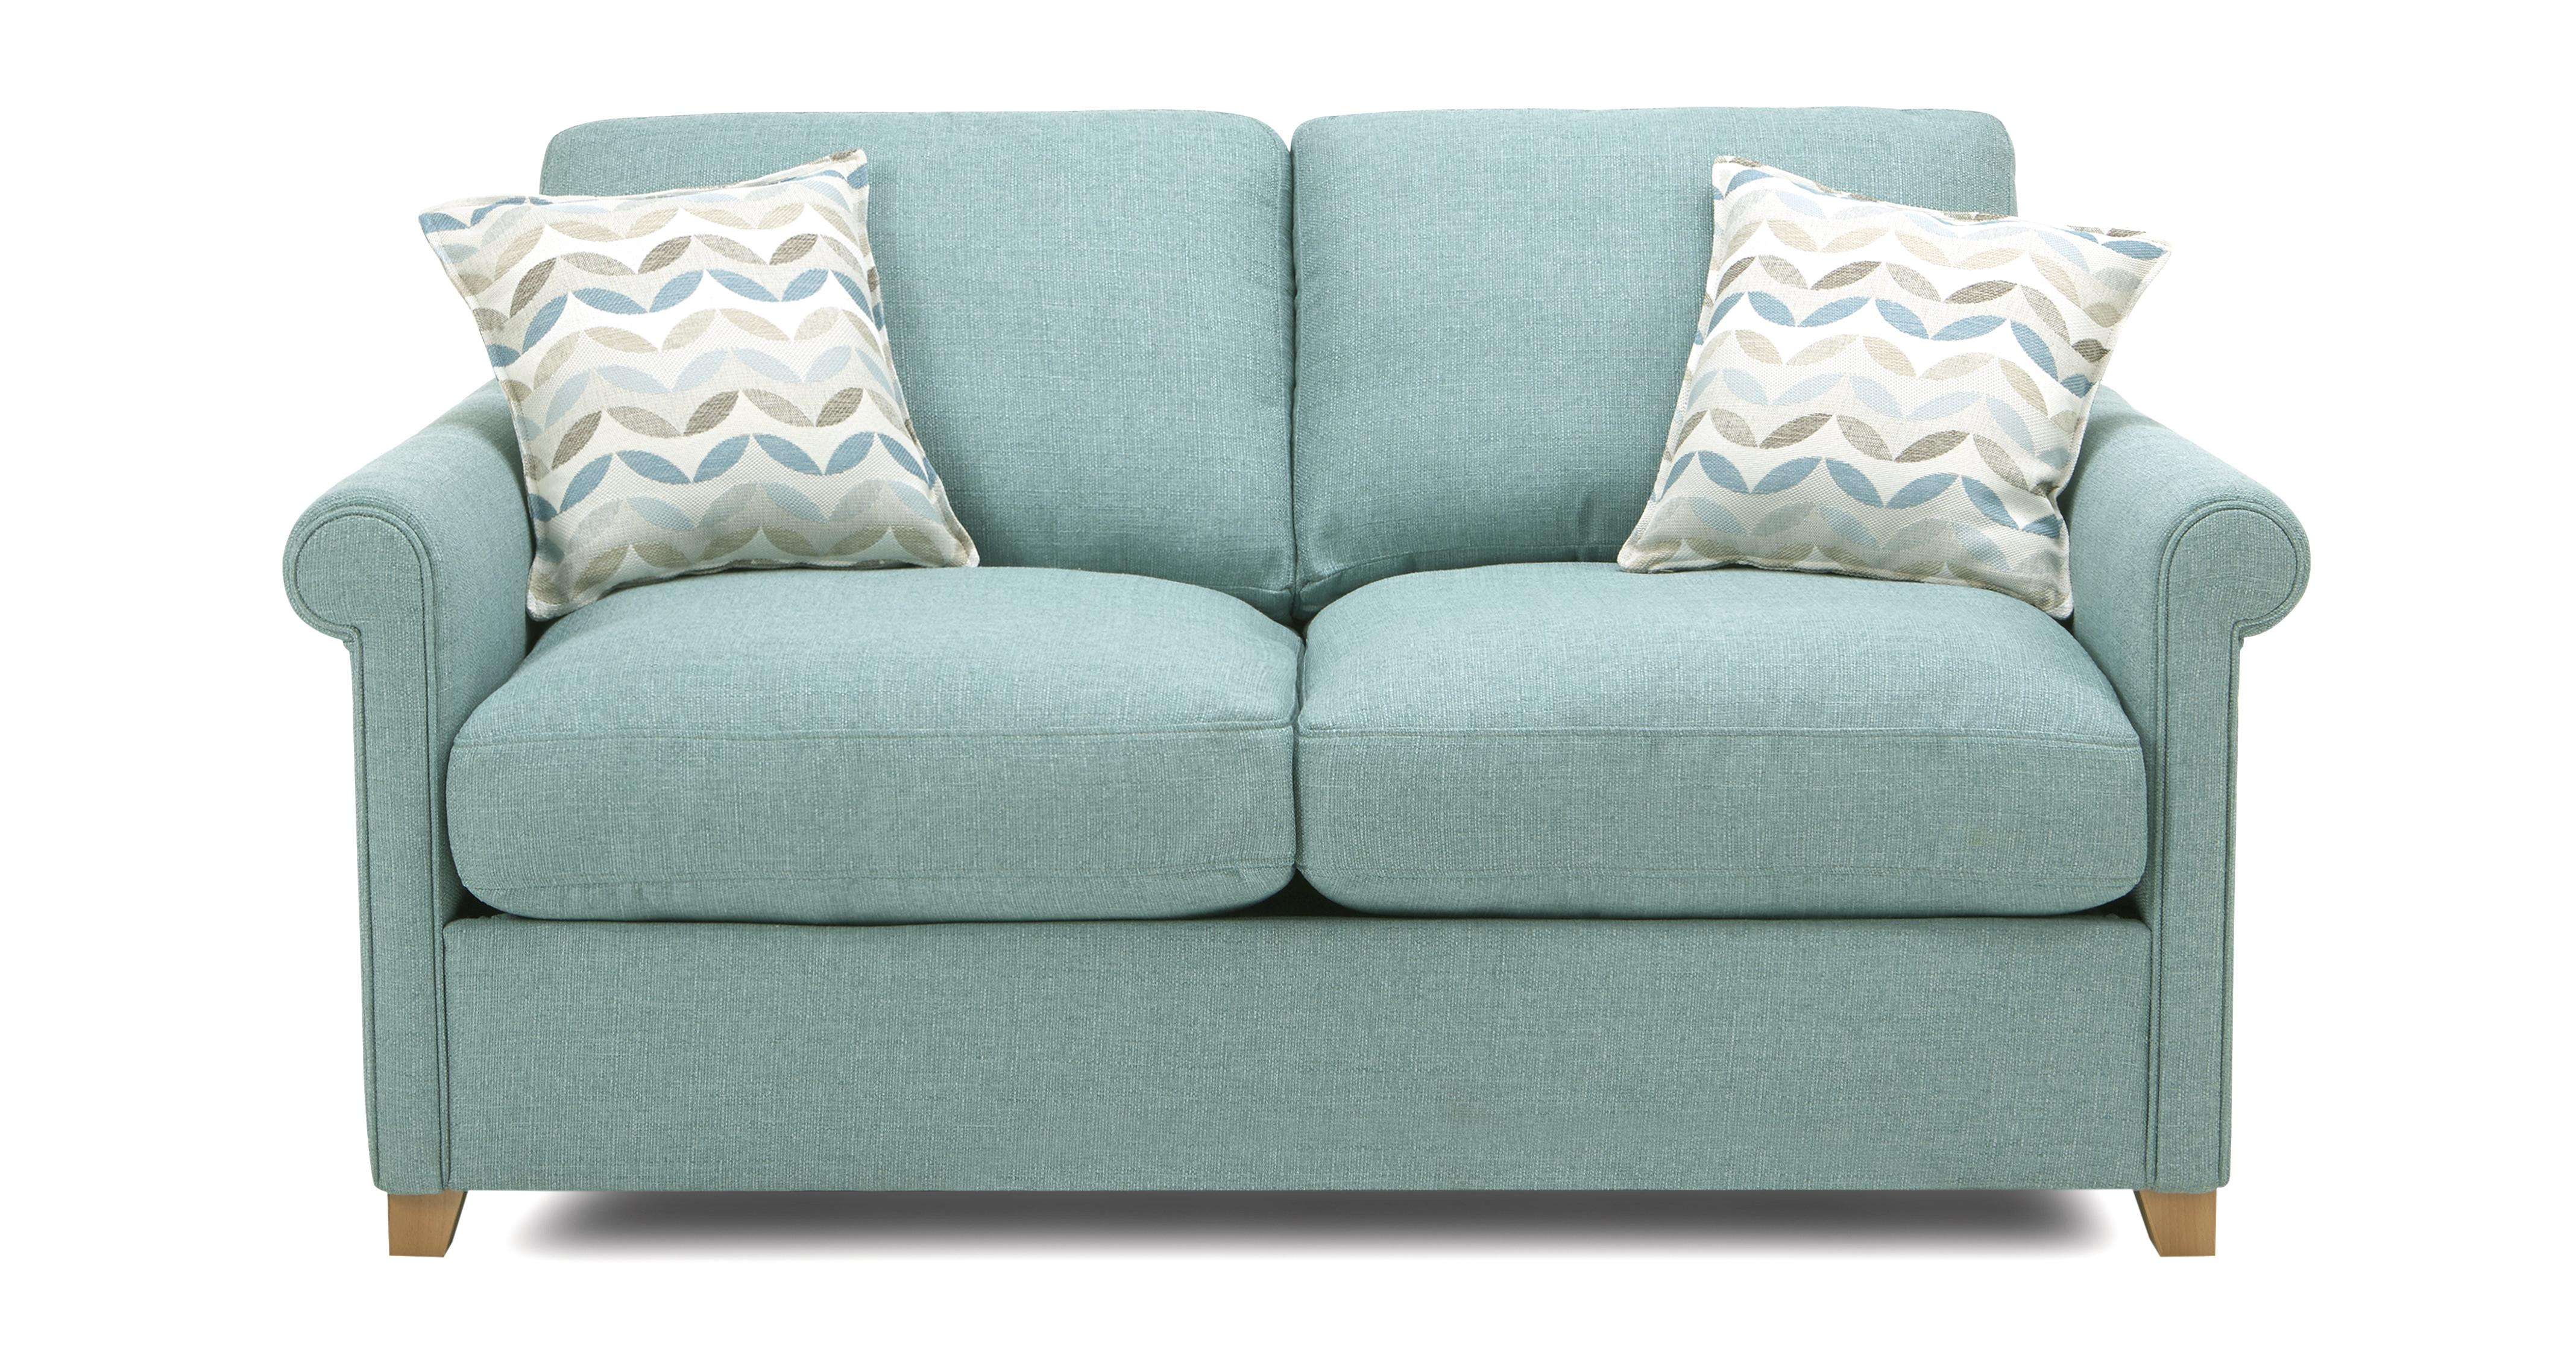 Anya 2 Seater Sofa Bed Dfs